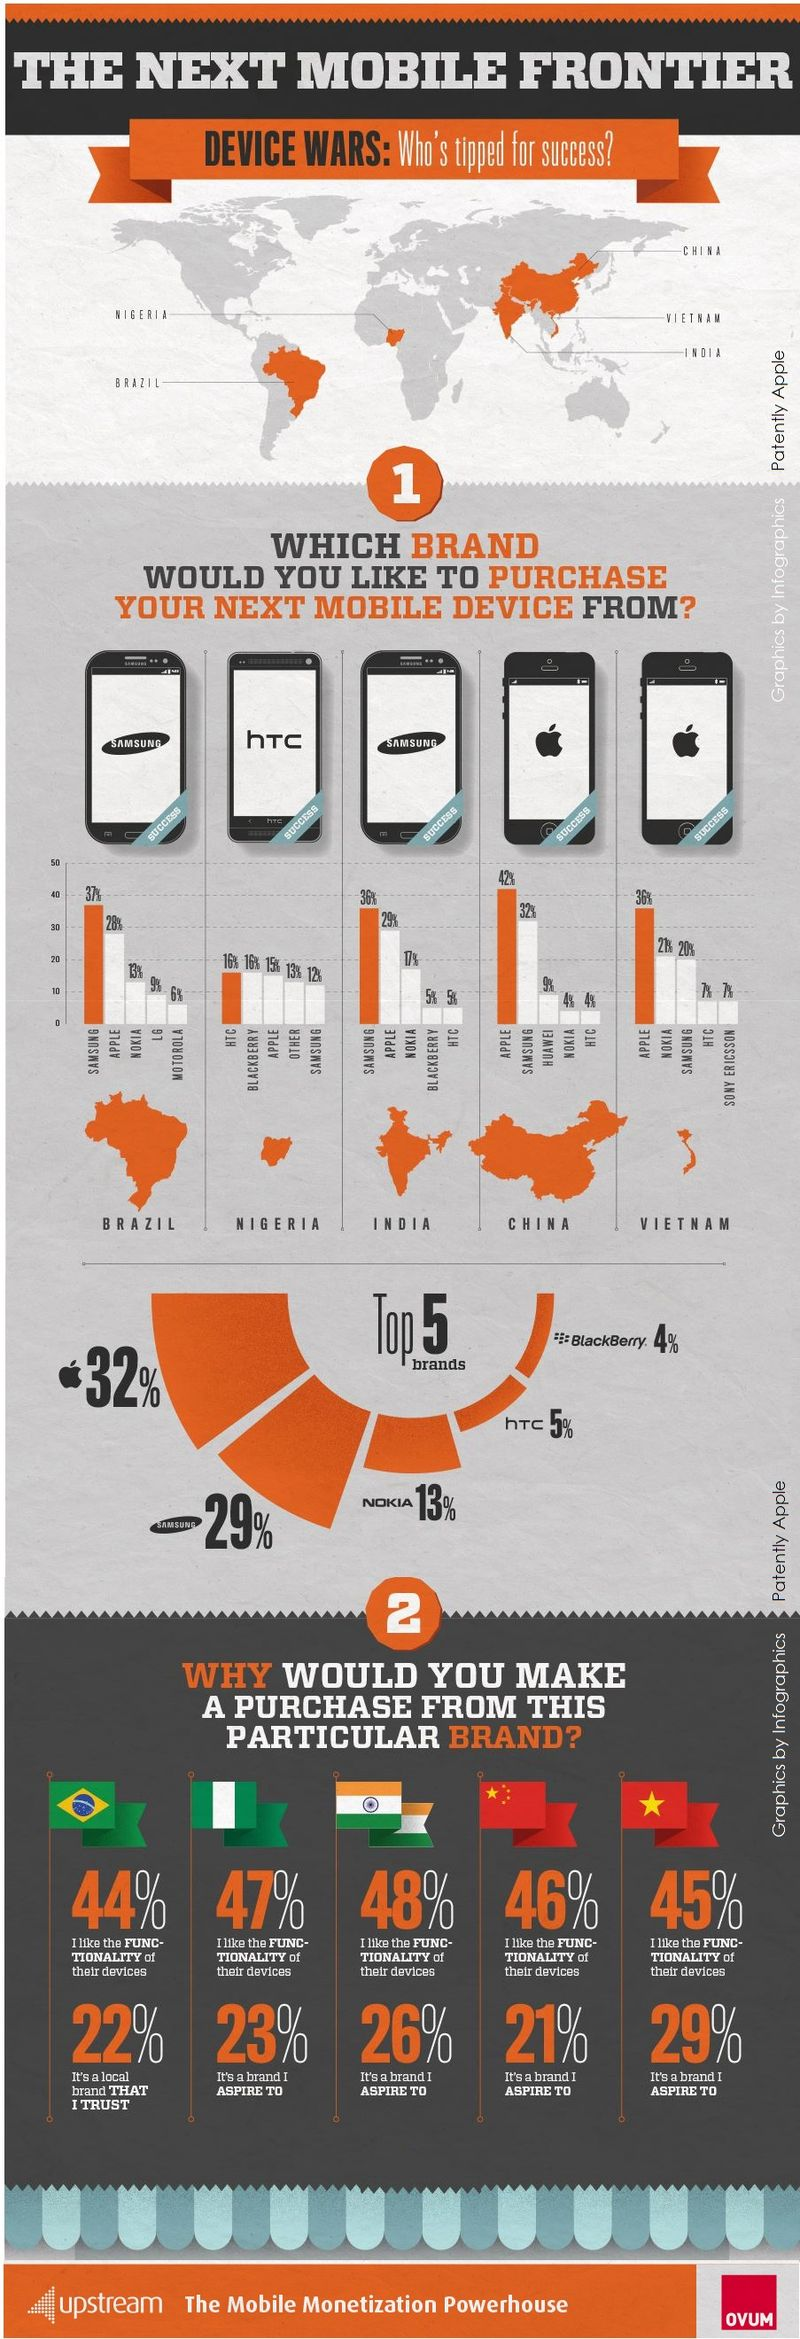 2A. There''s lust for Apple's iPhone, even in Emerging Markets